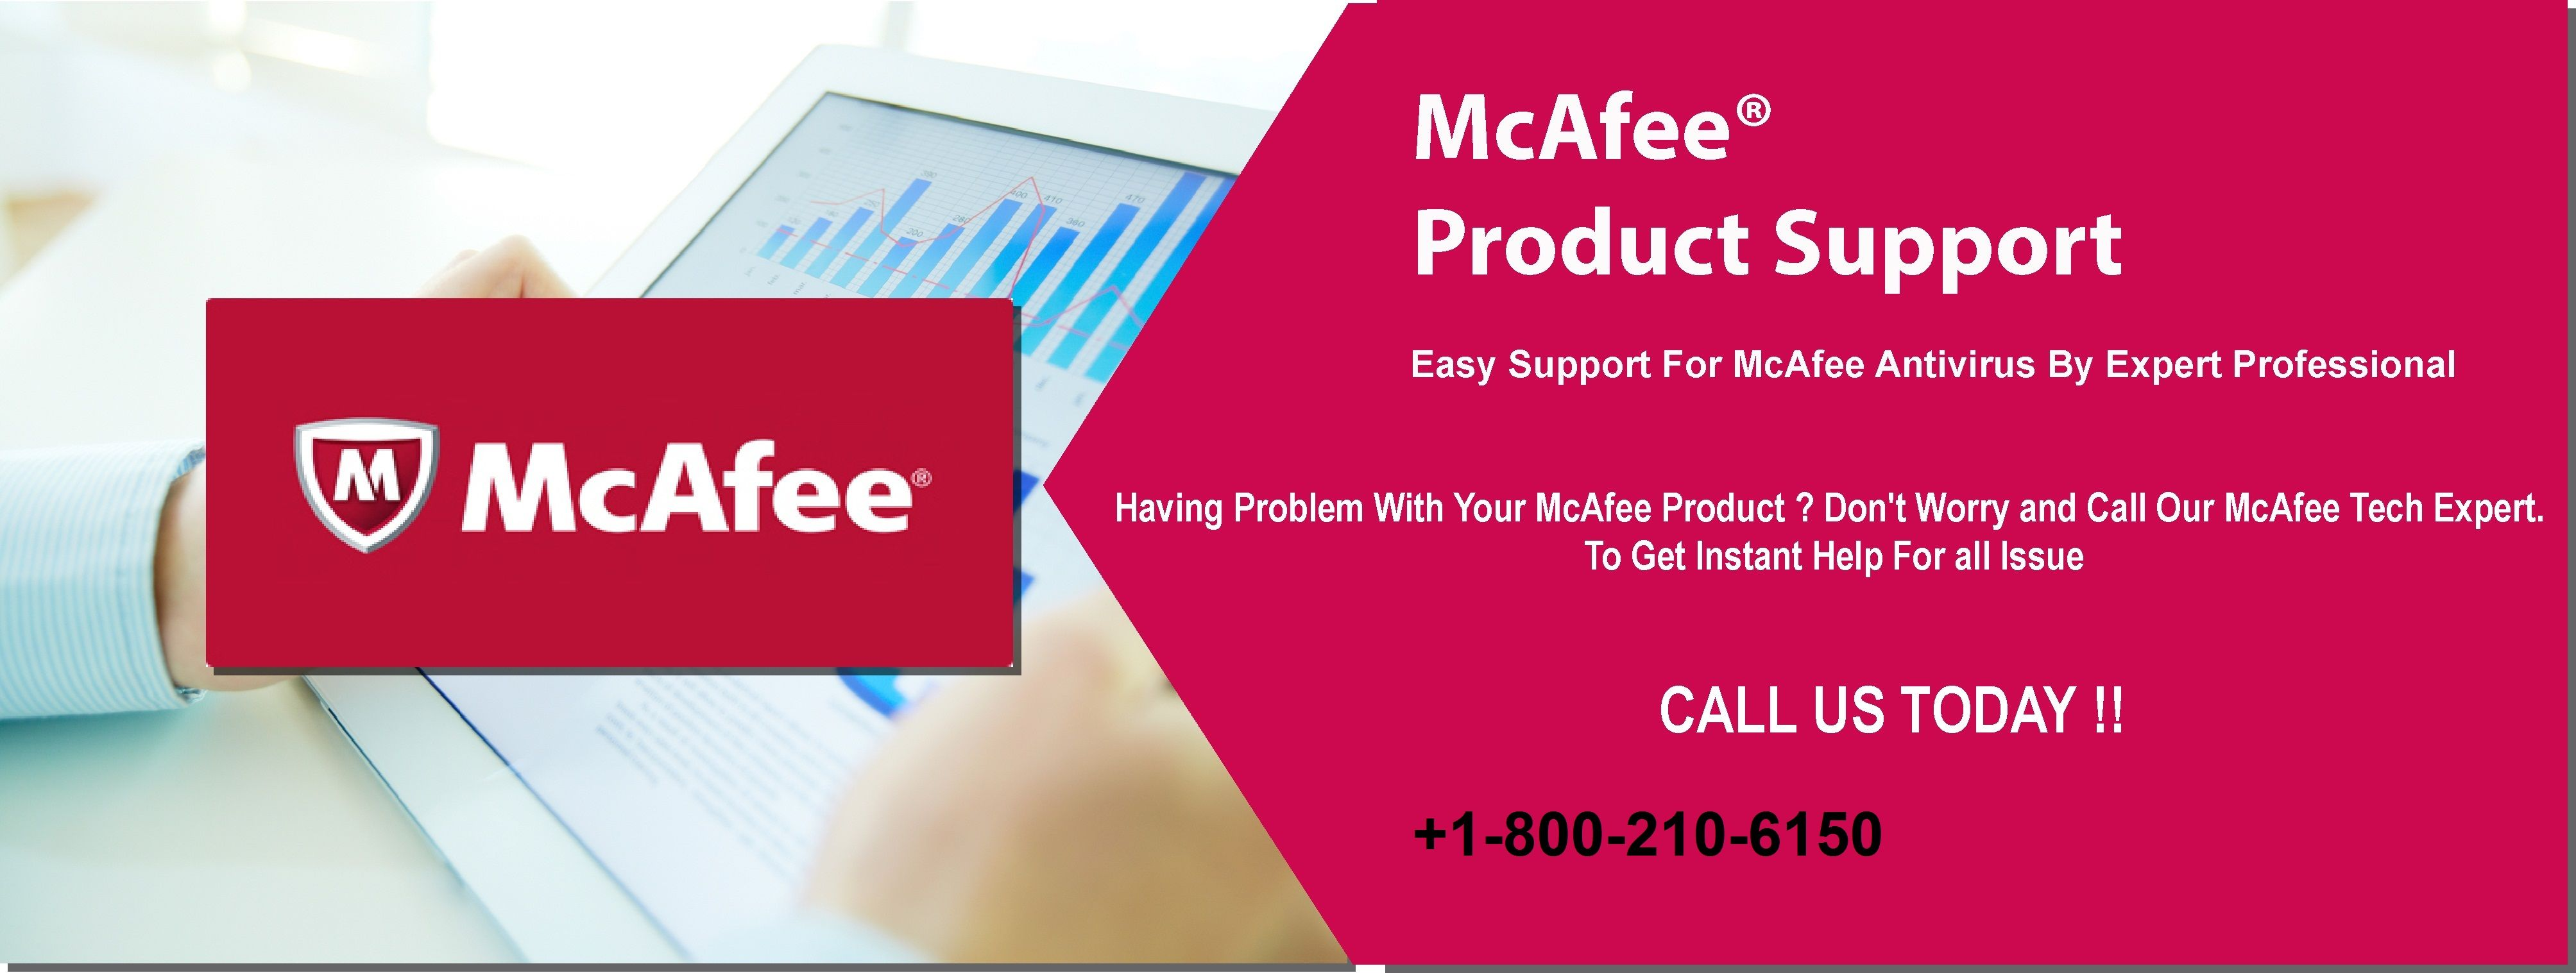 Mcafee customer service phone number +1-800-210-6150 to take